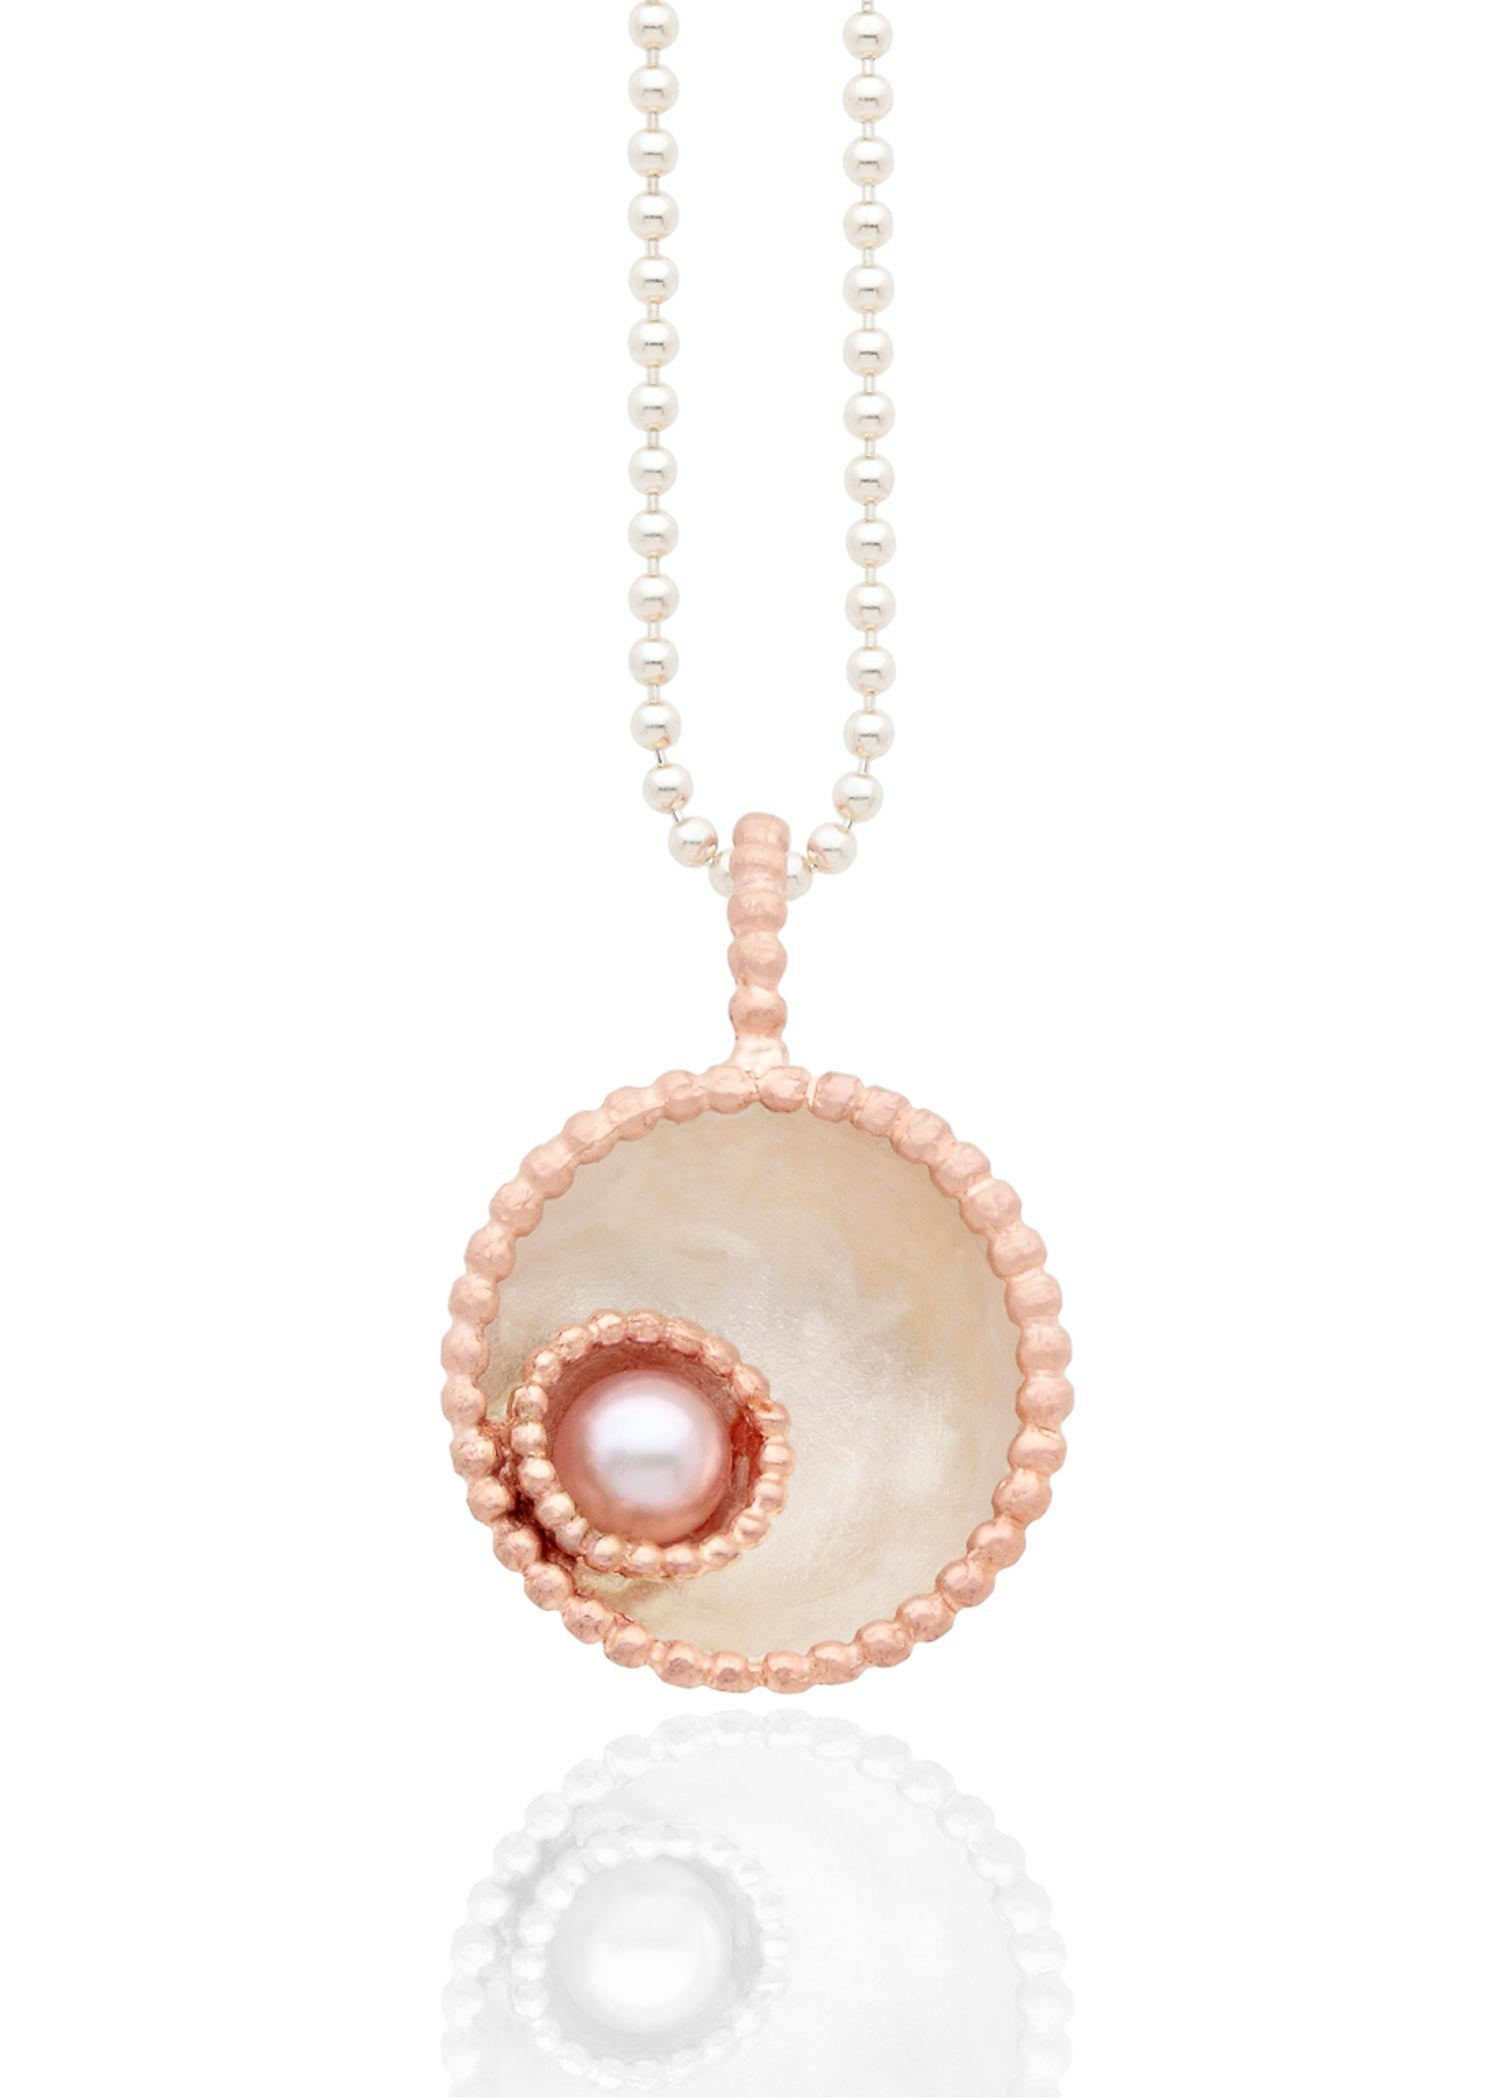 Byzantine dome pendant with pink pearl